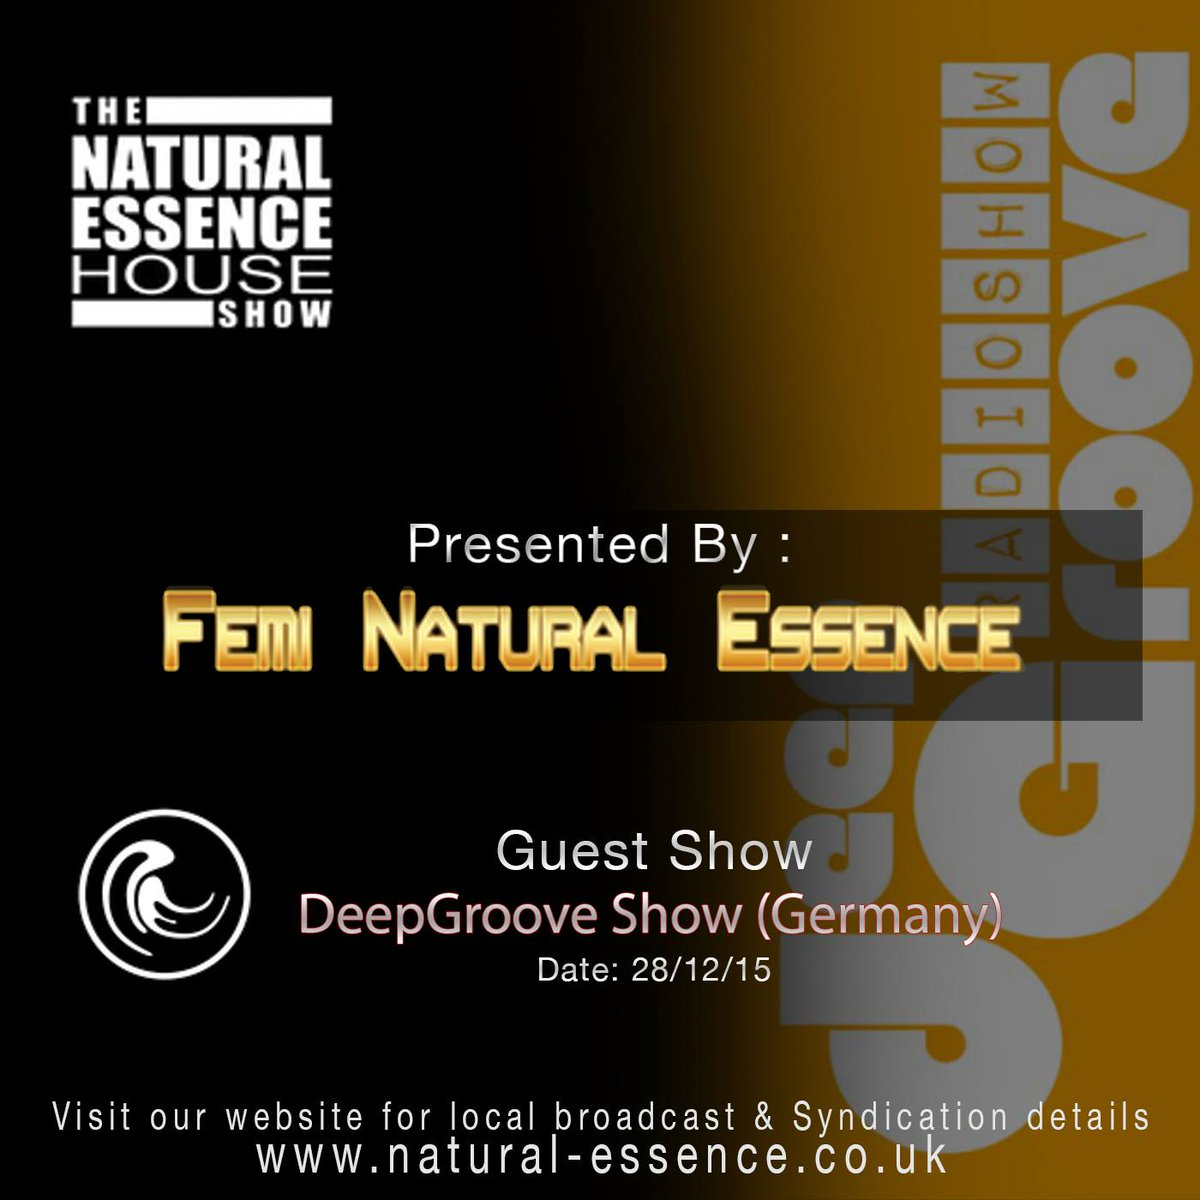 My new guestmix for @Natural_Essence now on Radios then release on demand #deephouse #soulfulhouse #housemusic https://t.co/PjNPQbvopl